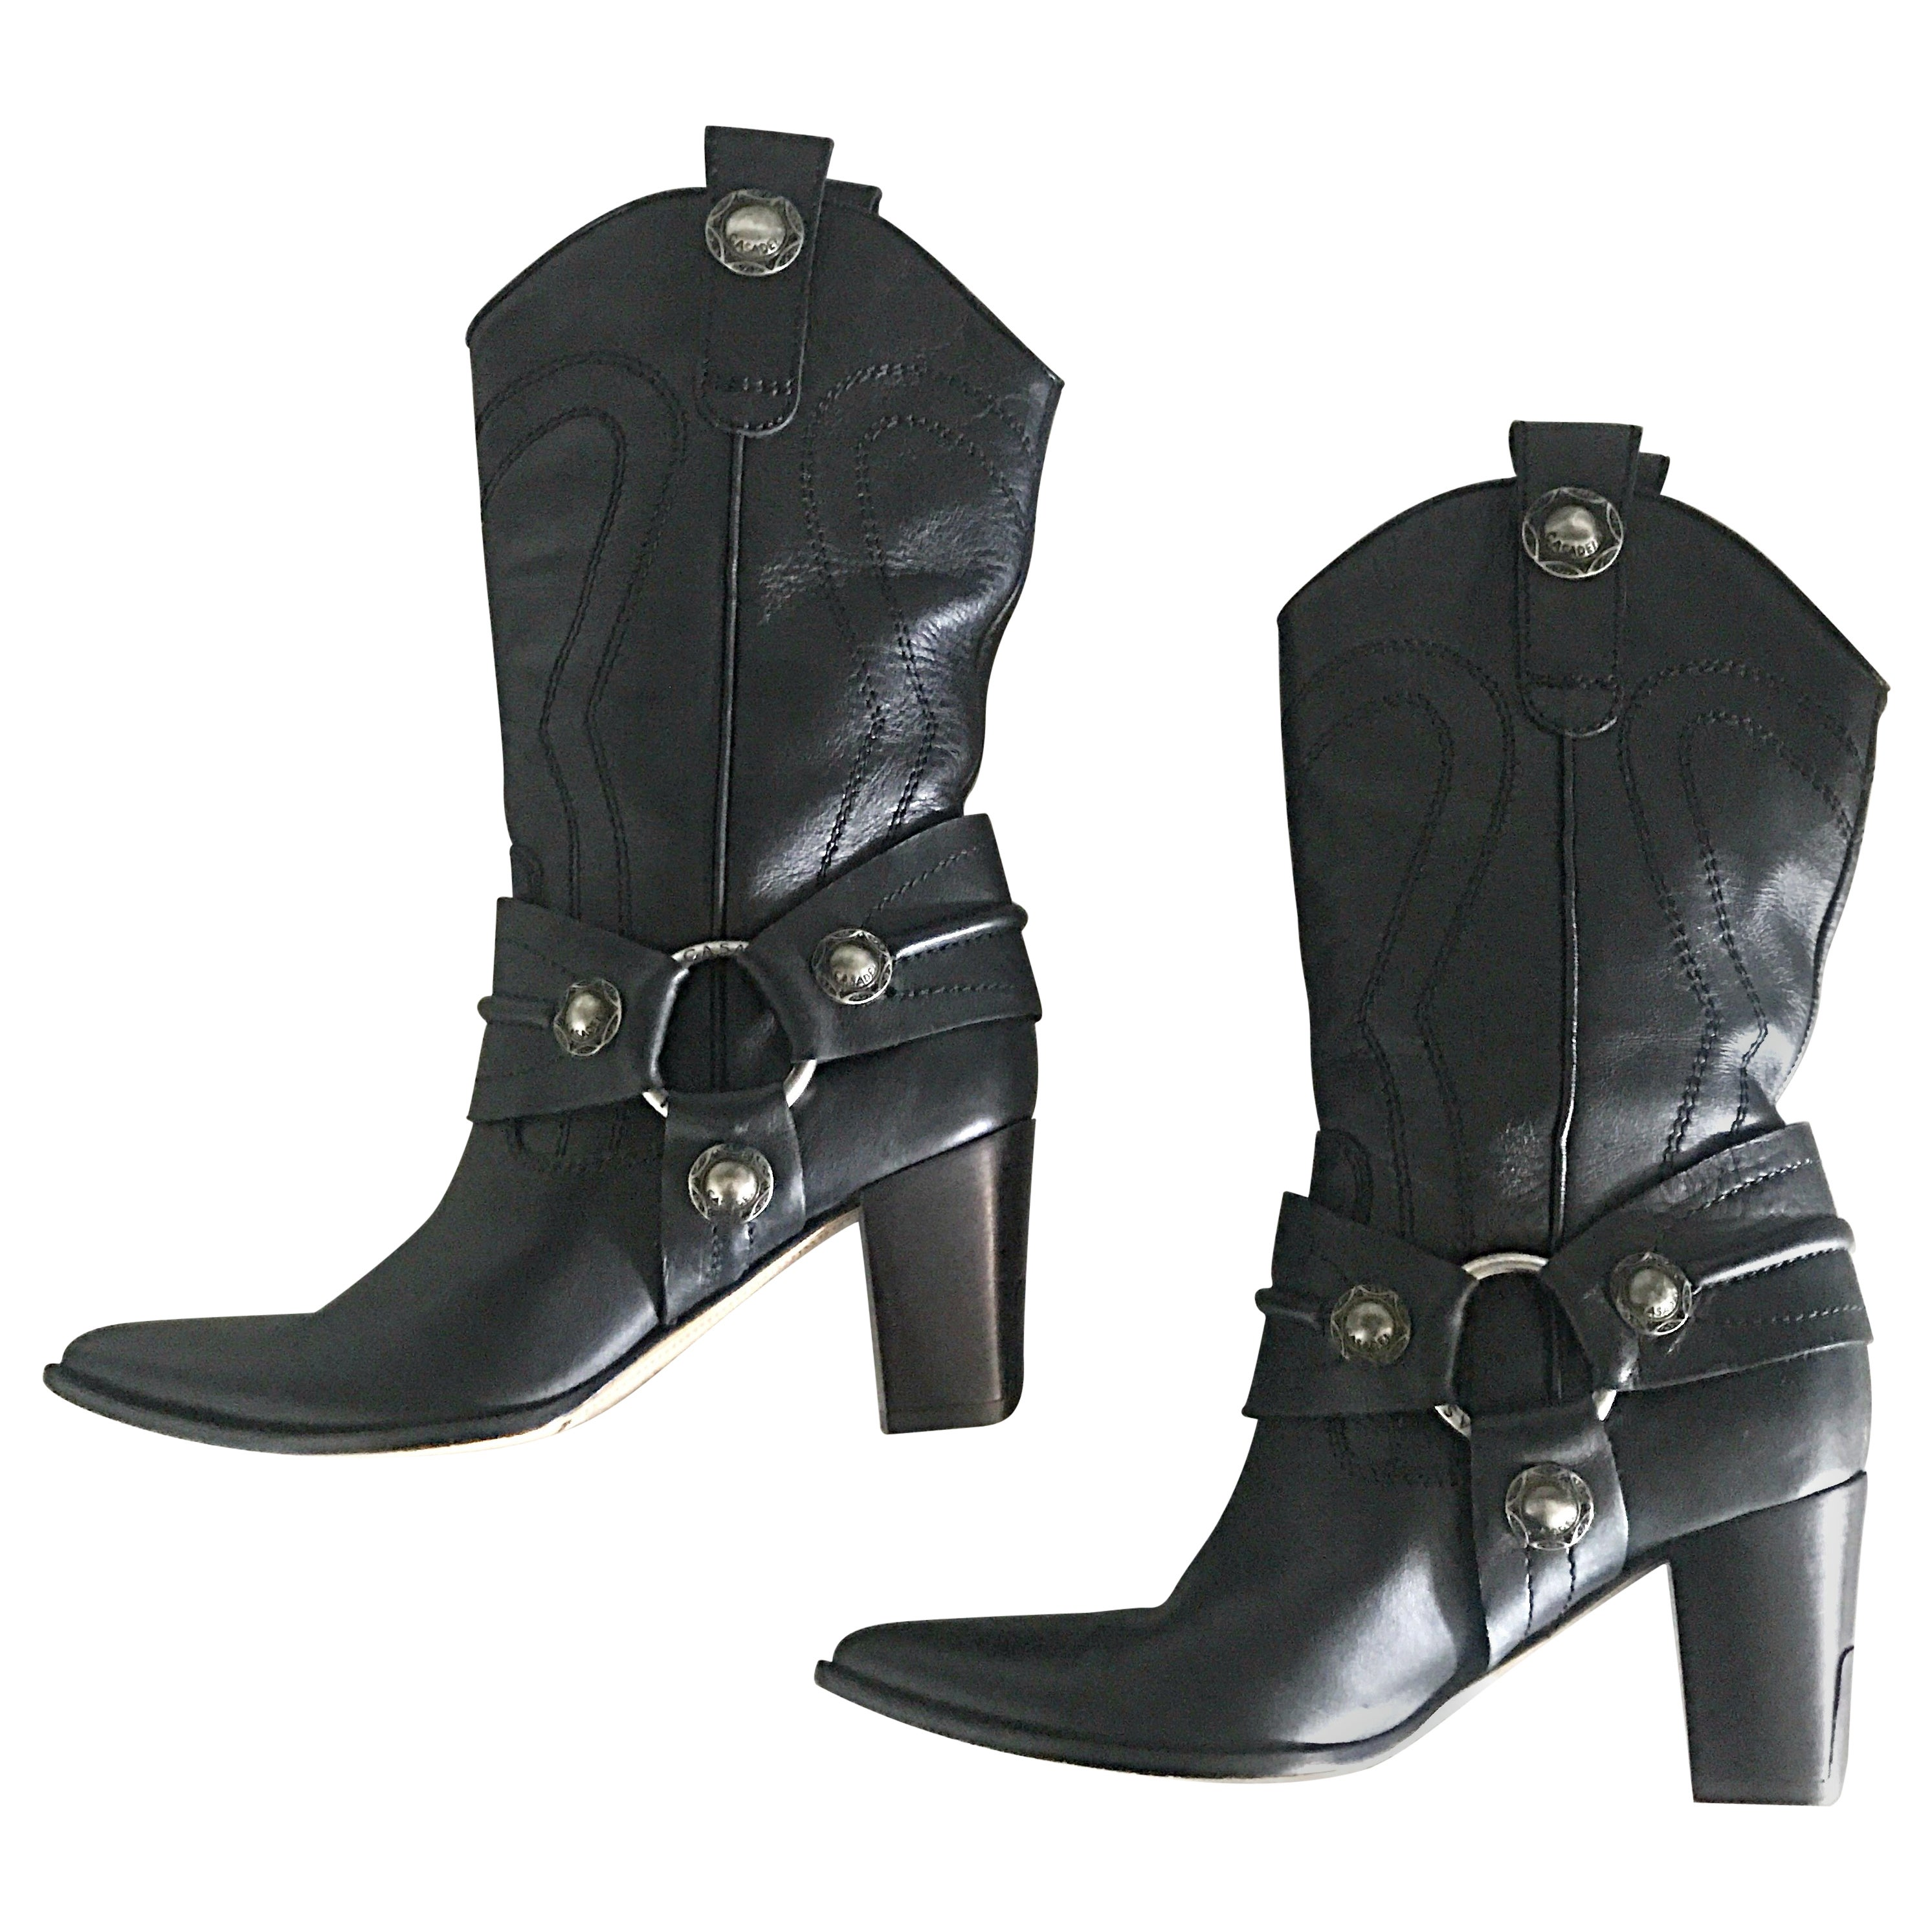 e35fa1d44a3 Casadei Black Leather Western High Heeled Pointed Toe Cowboy Boots For Sale  at 1stdibs